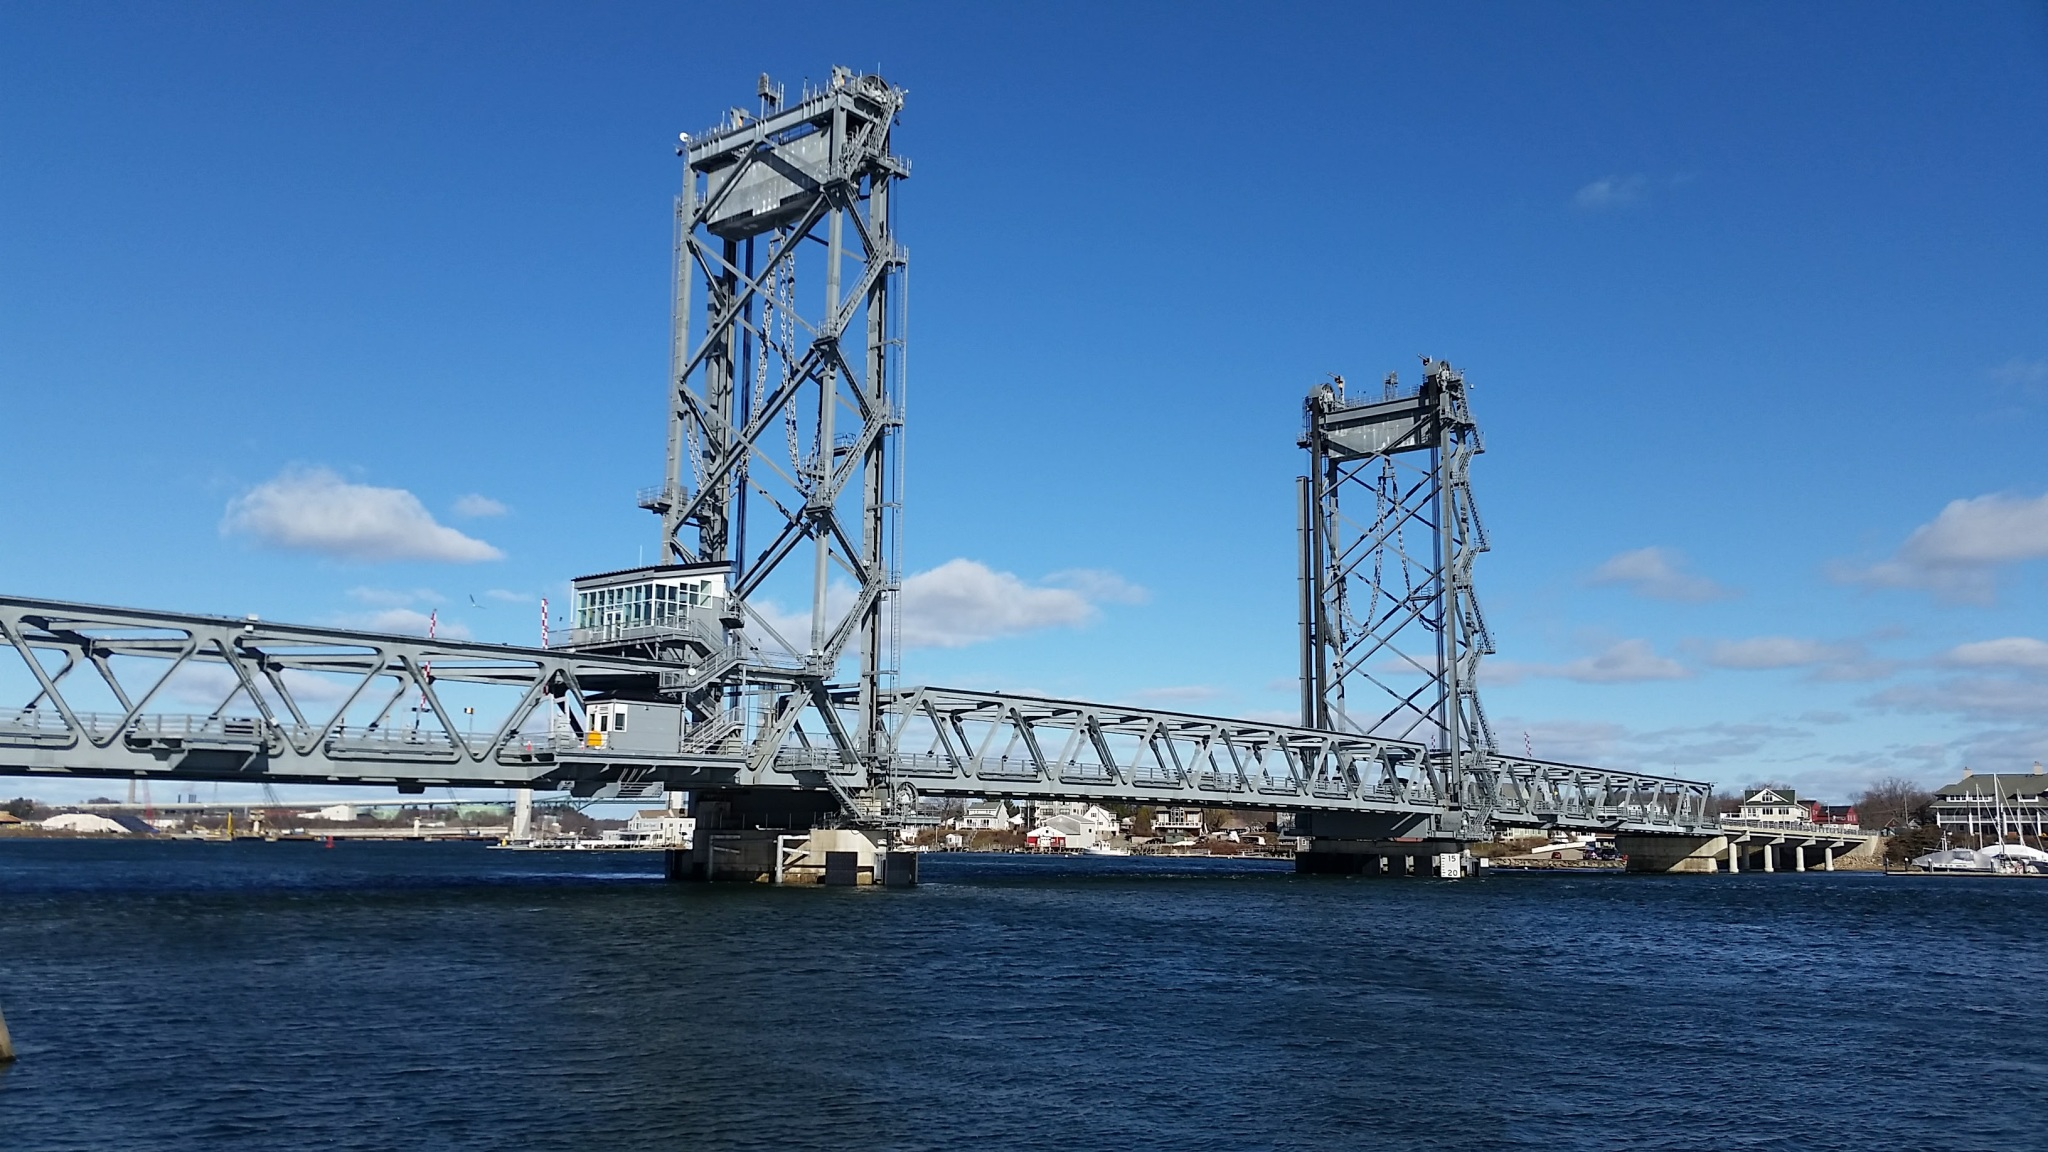 View of the Memorial Bridge from the Portsmouth Side